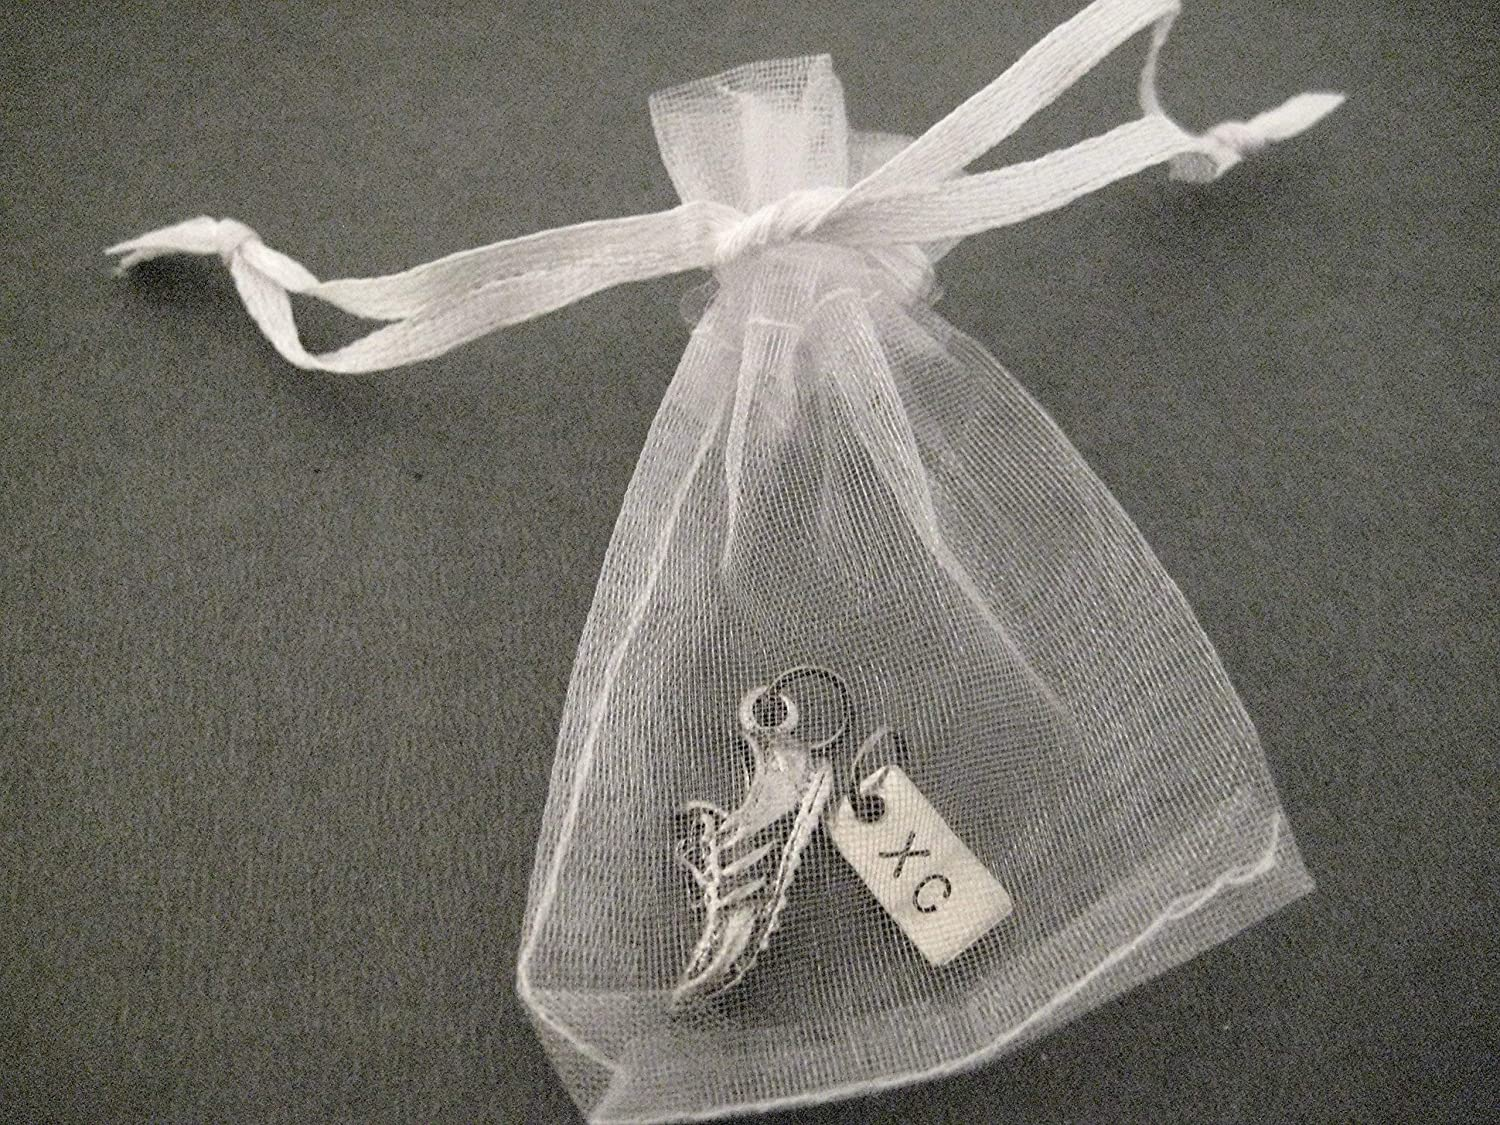 10 Sets of RUNNING SHOE XC Charm Set 1 1 ONE Pewter Running Shoe Charm Plus ONE XC Charm in Each Set SHOE XC 10 Pack Set Each Set in Organza Bag